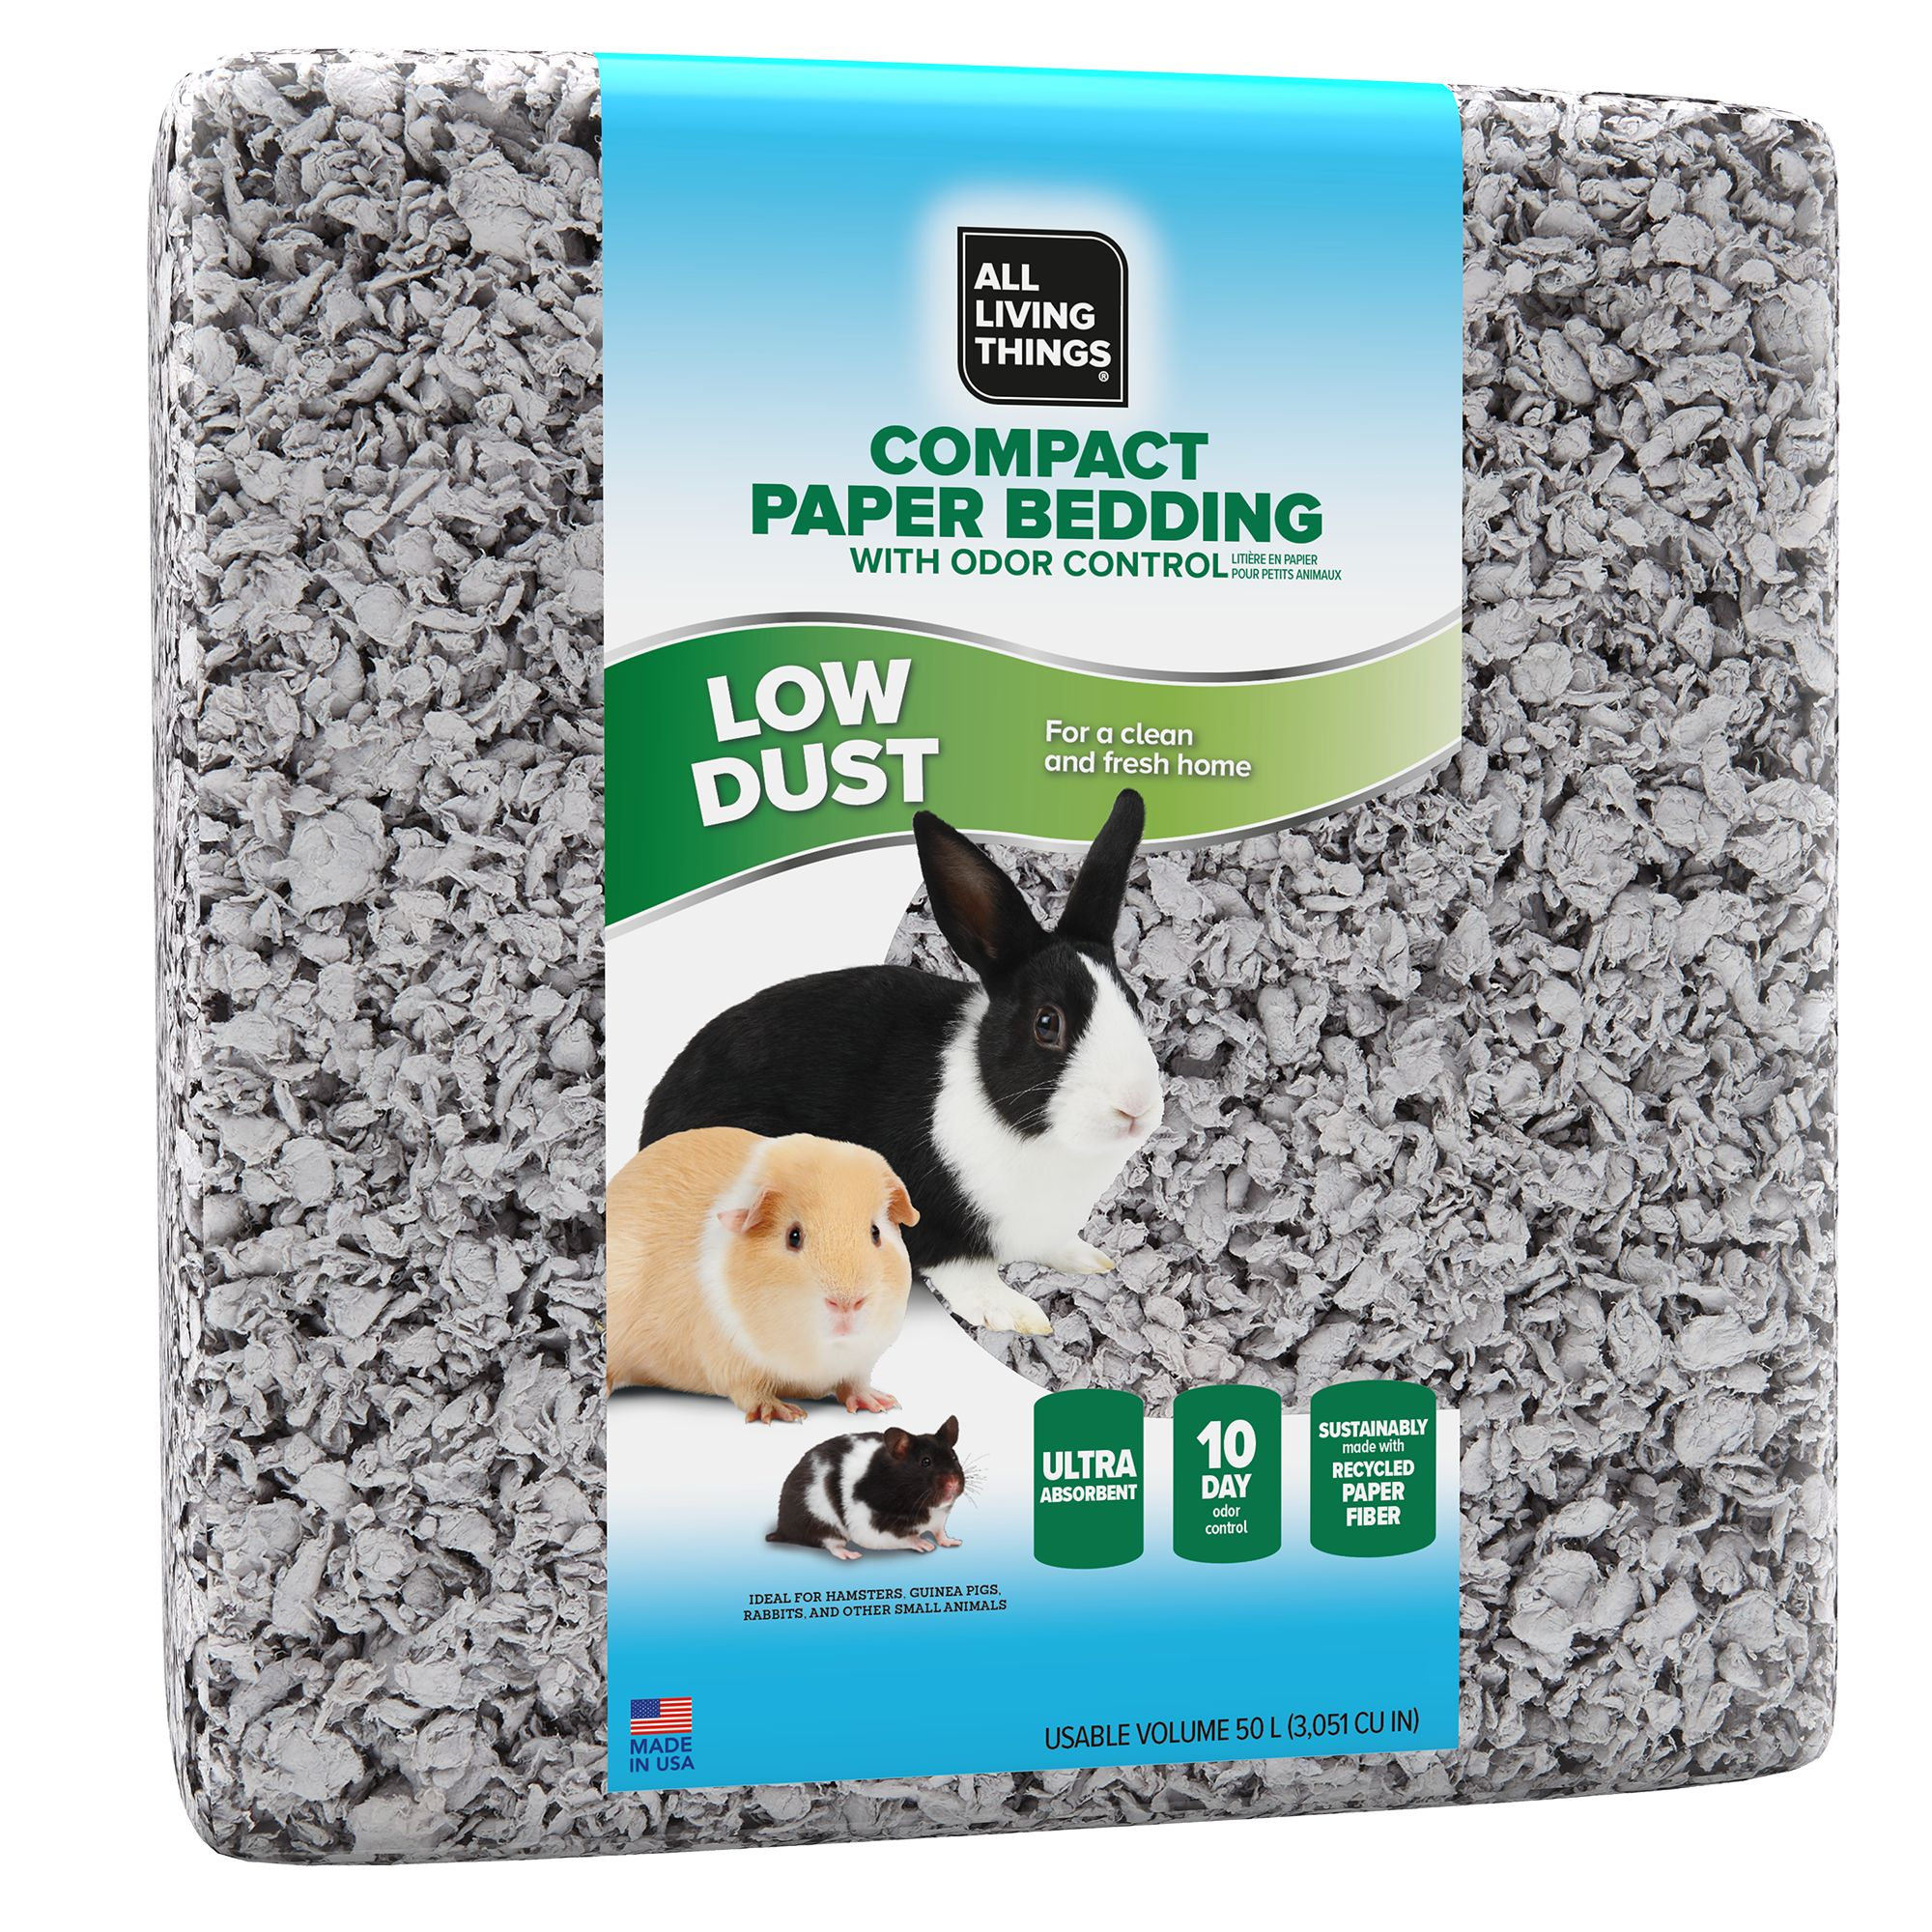 All Living Things® Compact Paper Bedding with Odor Control